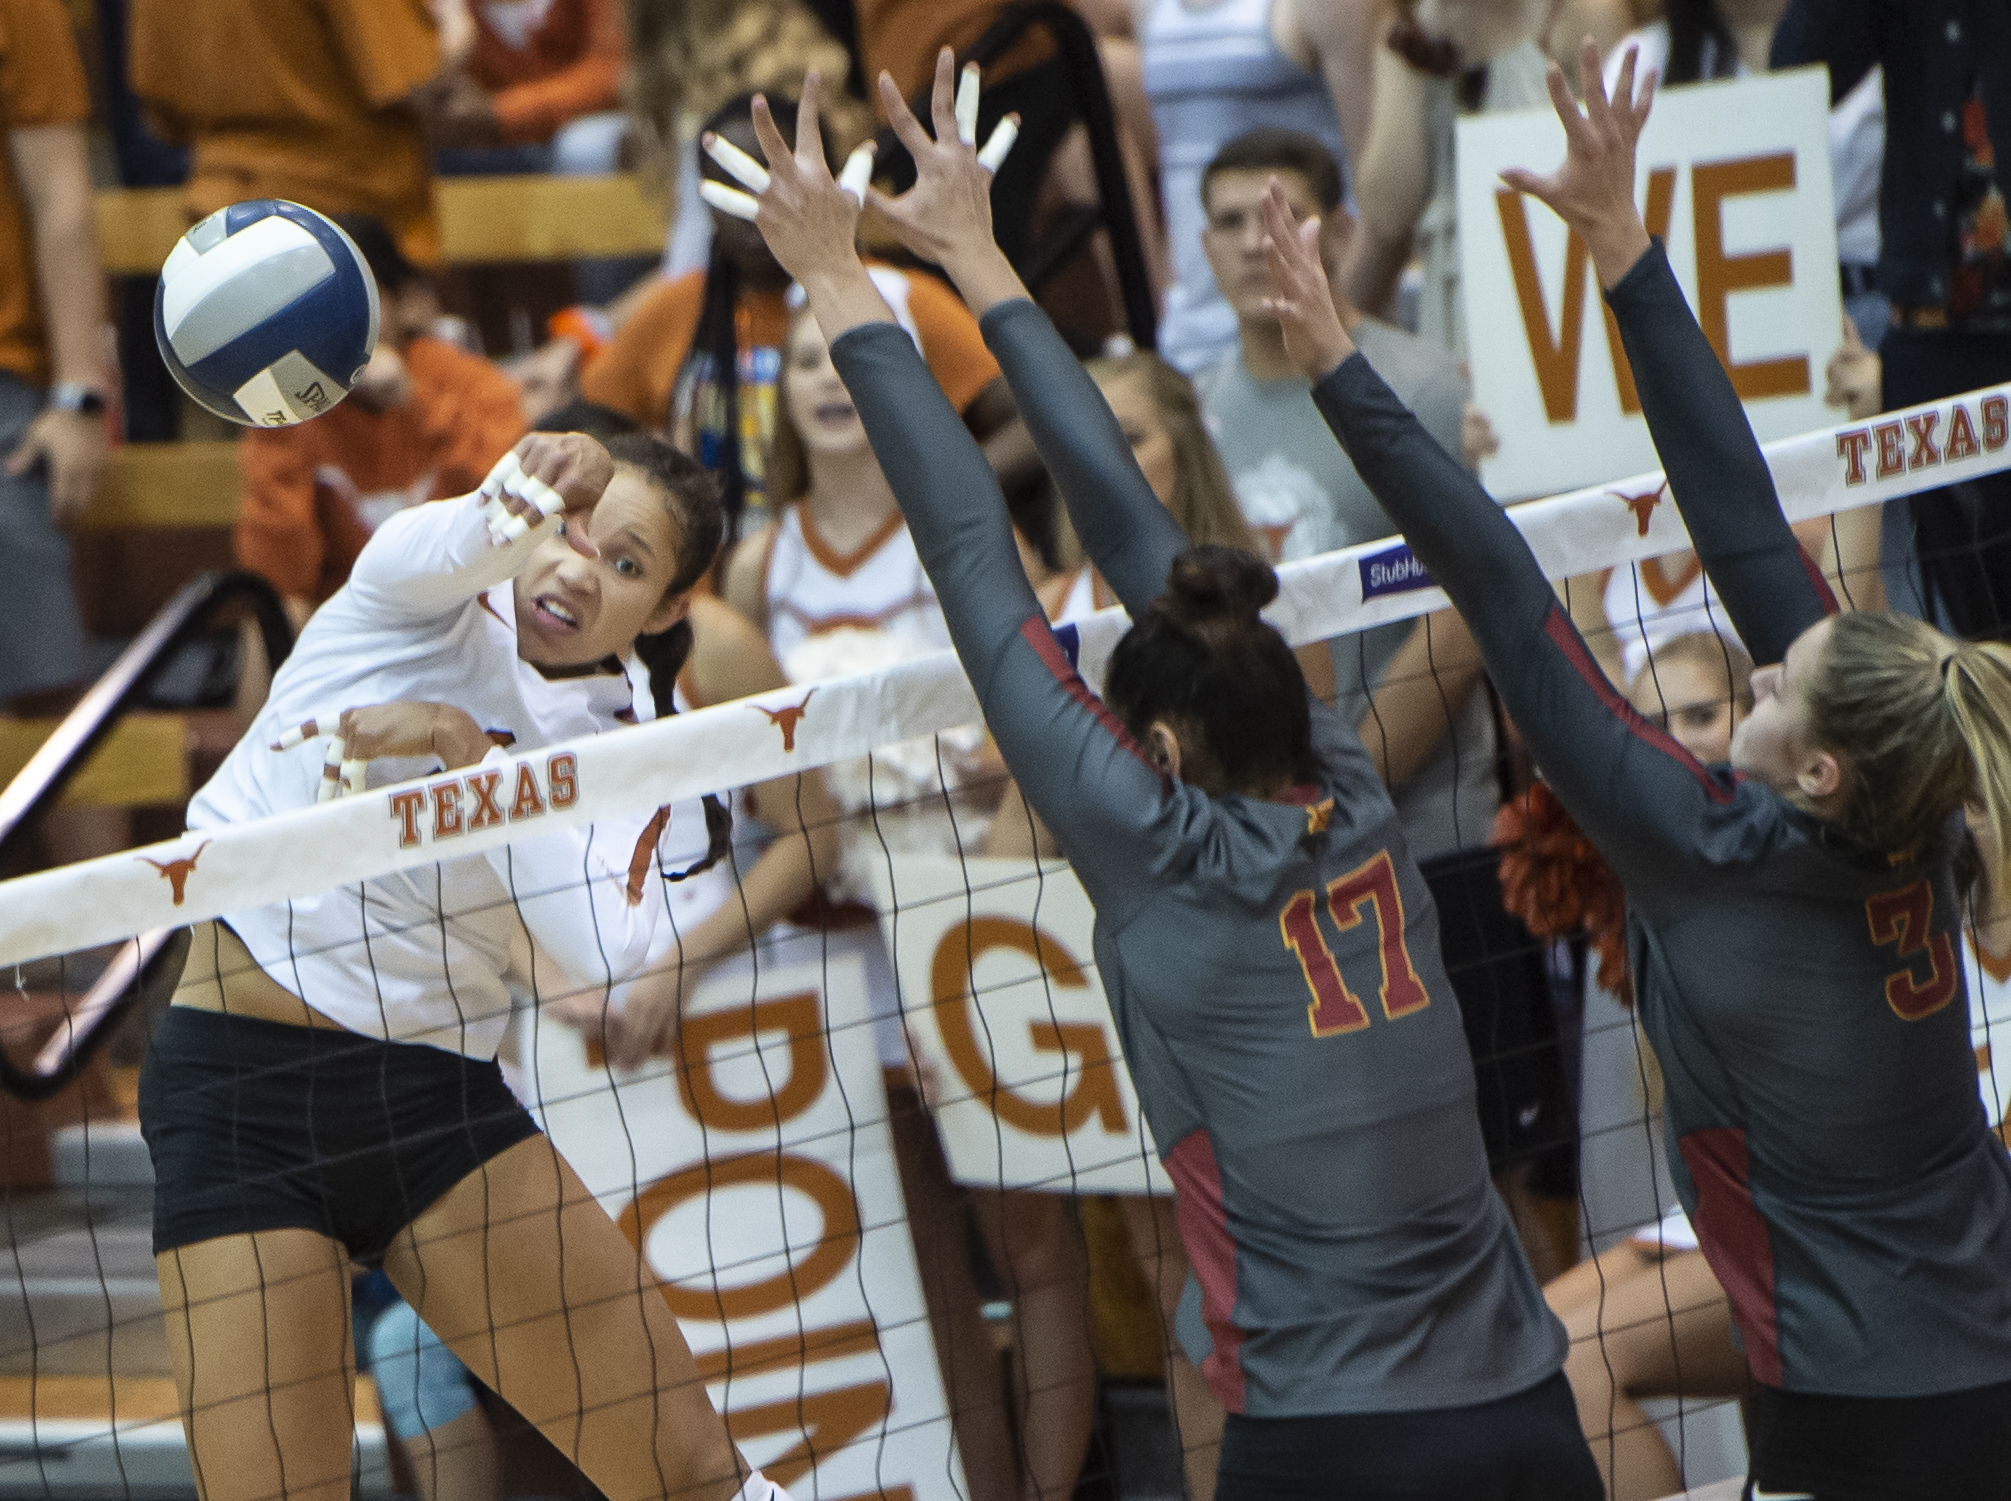 Micaya White led the Texas team with 19 kills. Micaya makes sure no one blocks this one!